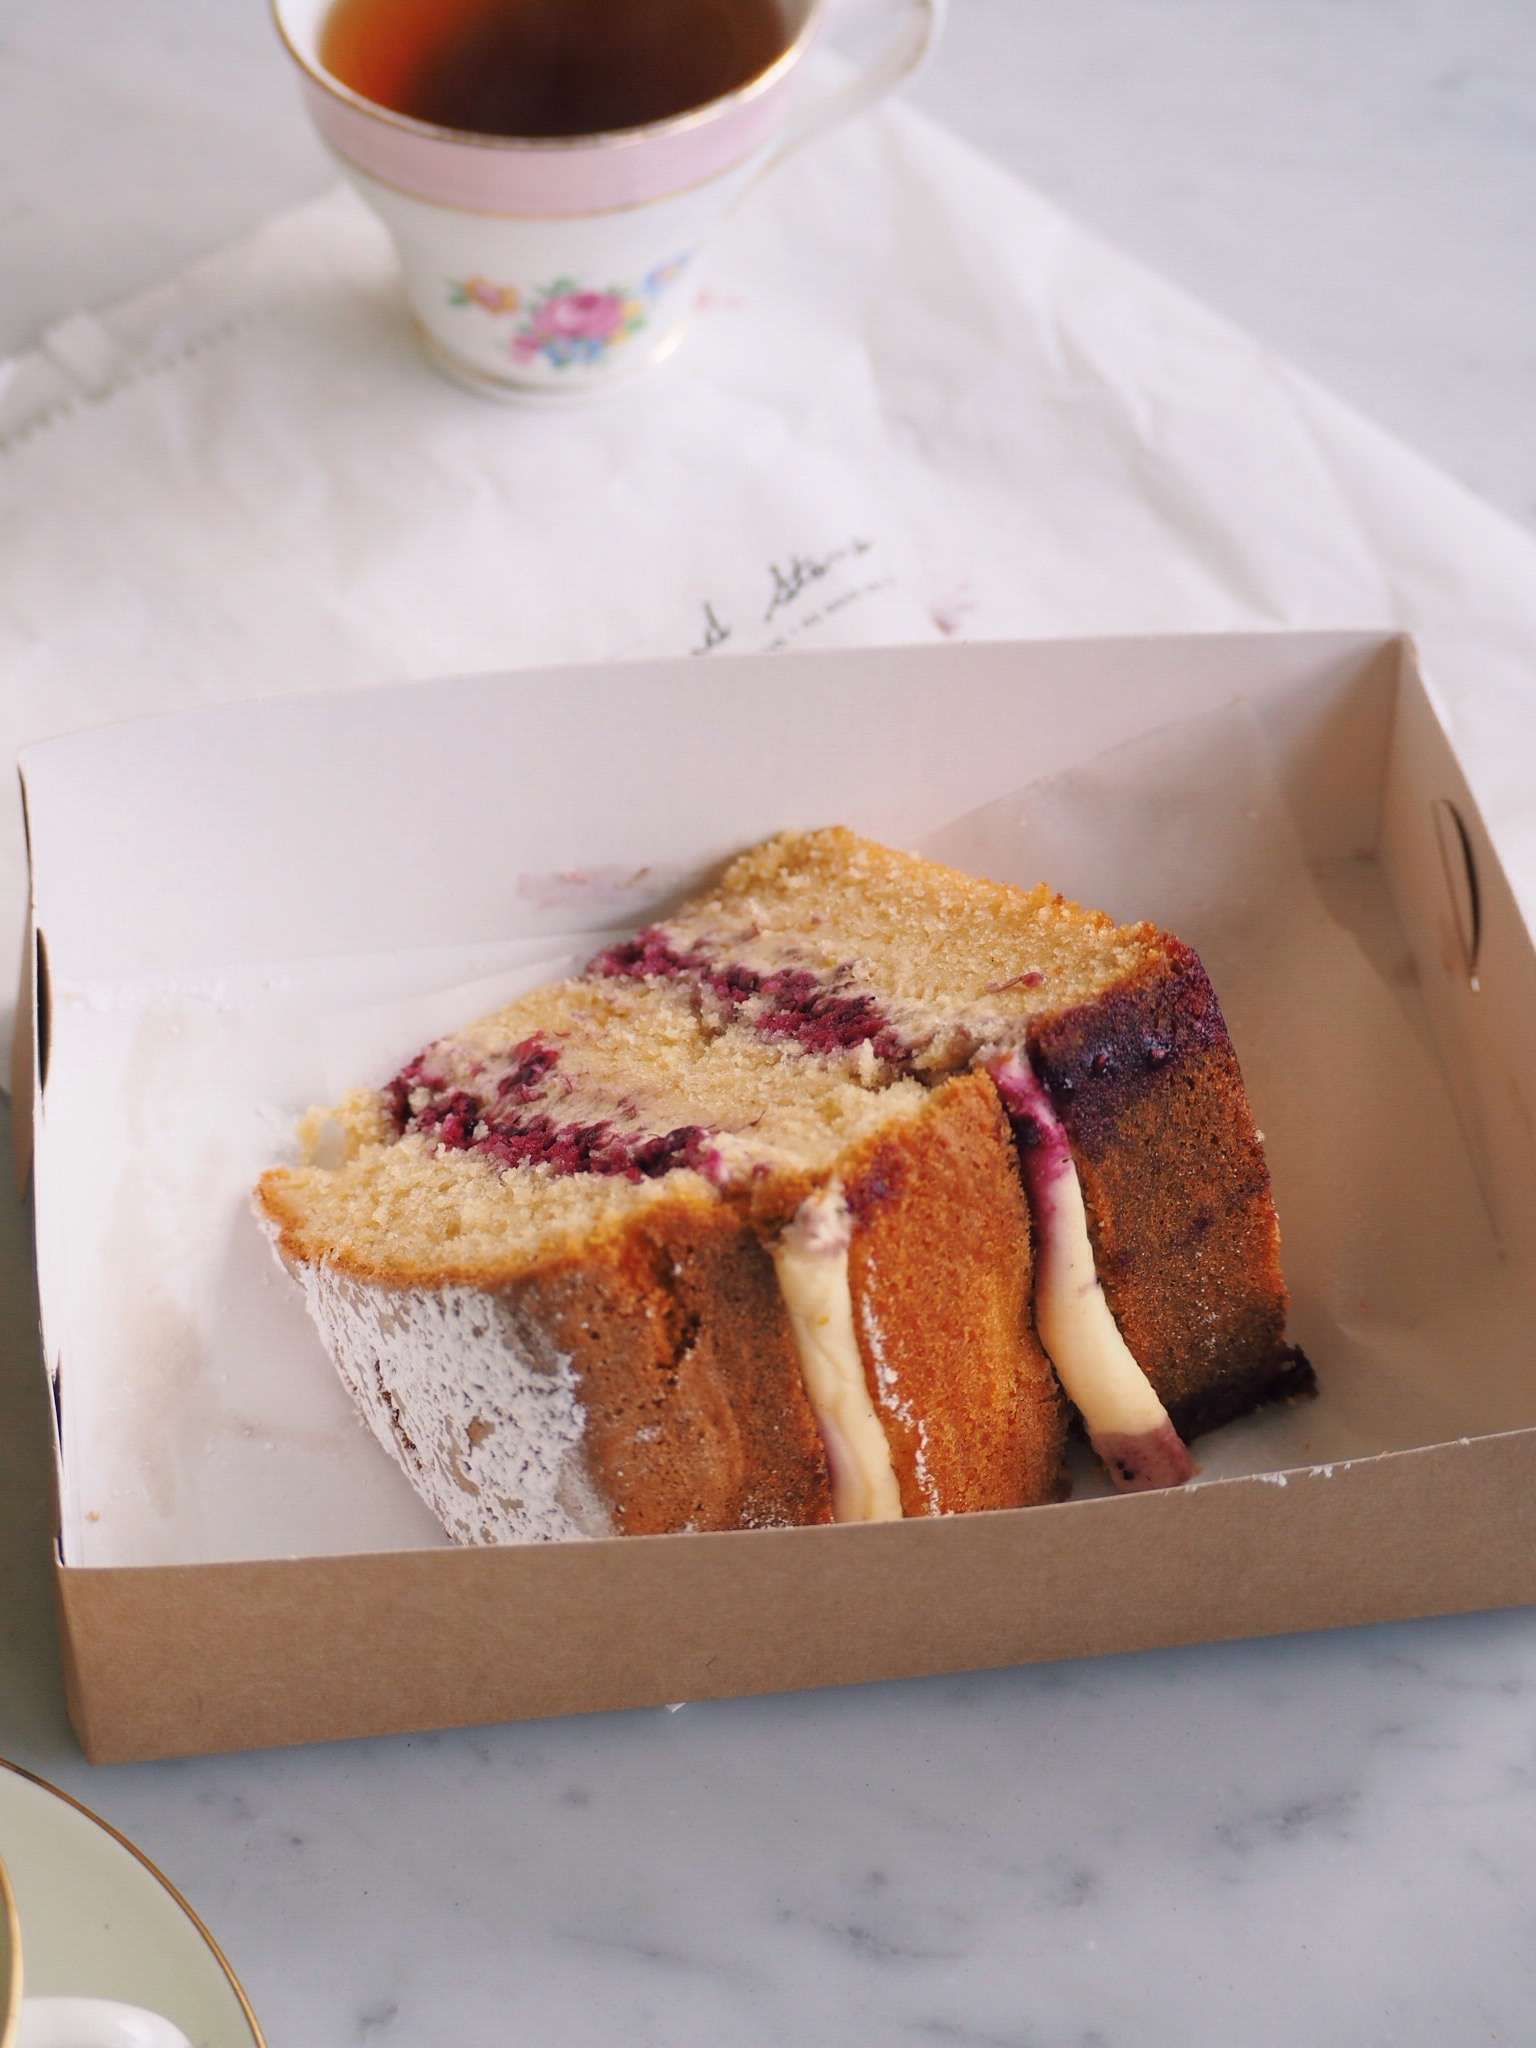 Old Fashioned Vanilla Cake from Flour & Stone